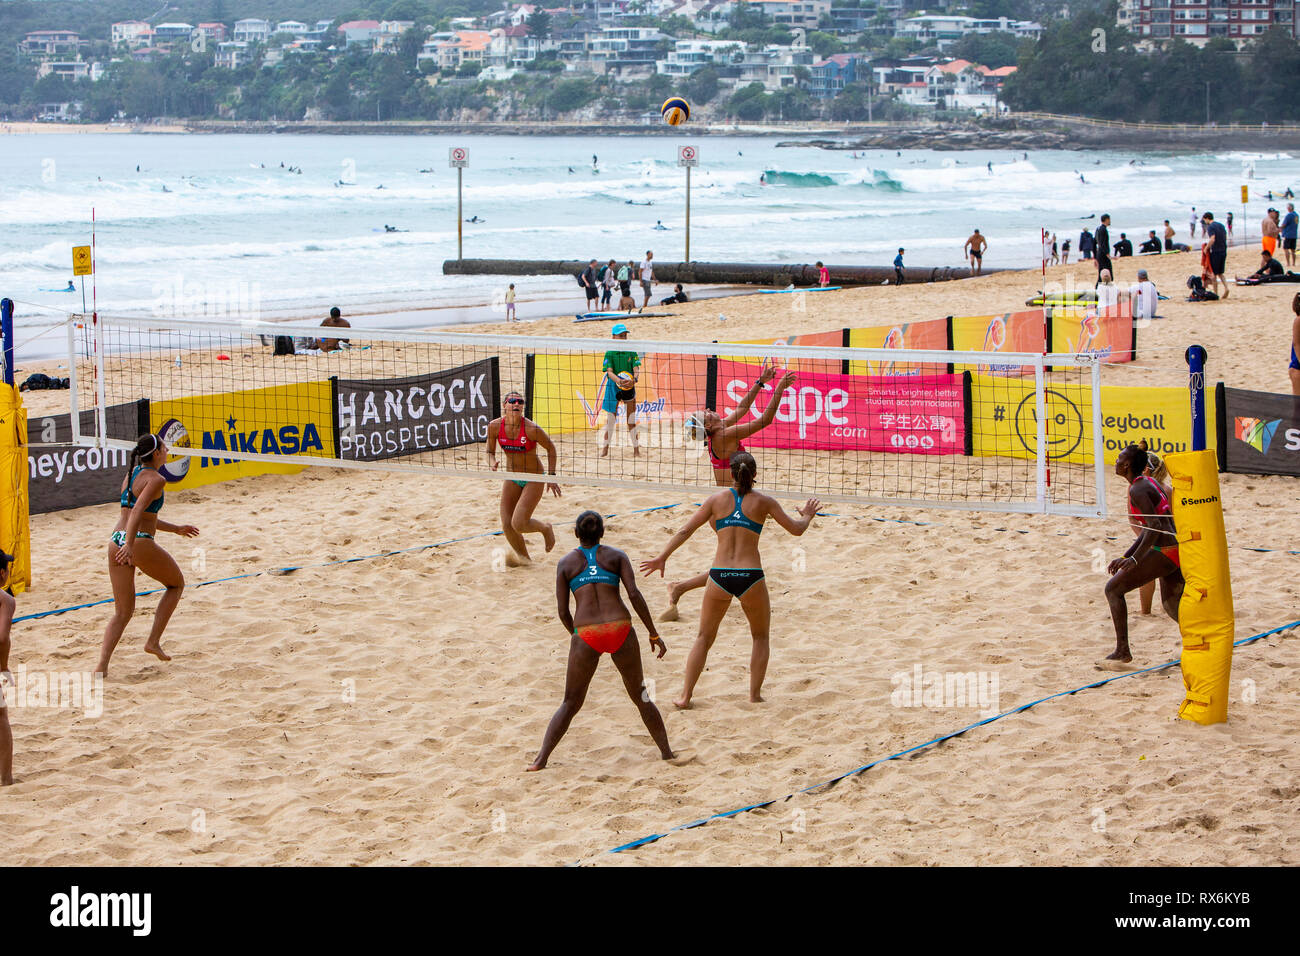 Page 3 Volleyball Tournament High Resolution Stock Photography And Images Alamy